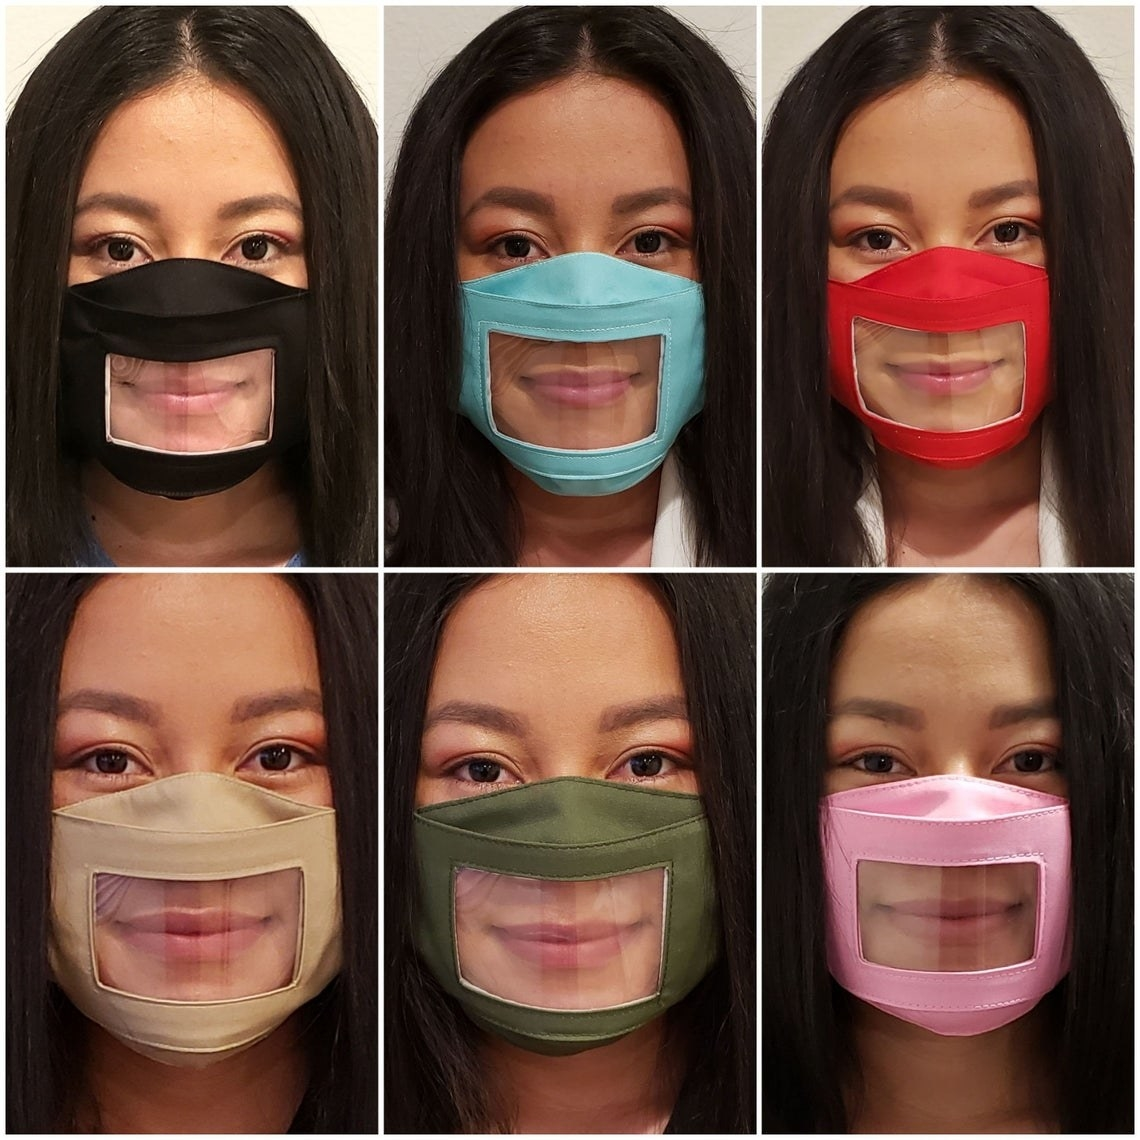 A series of photos of a model wearing the mask in different colors.